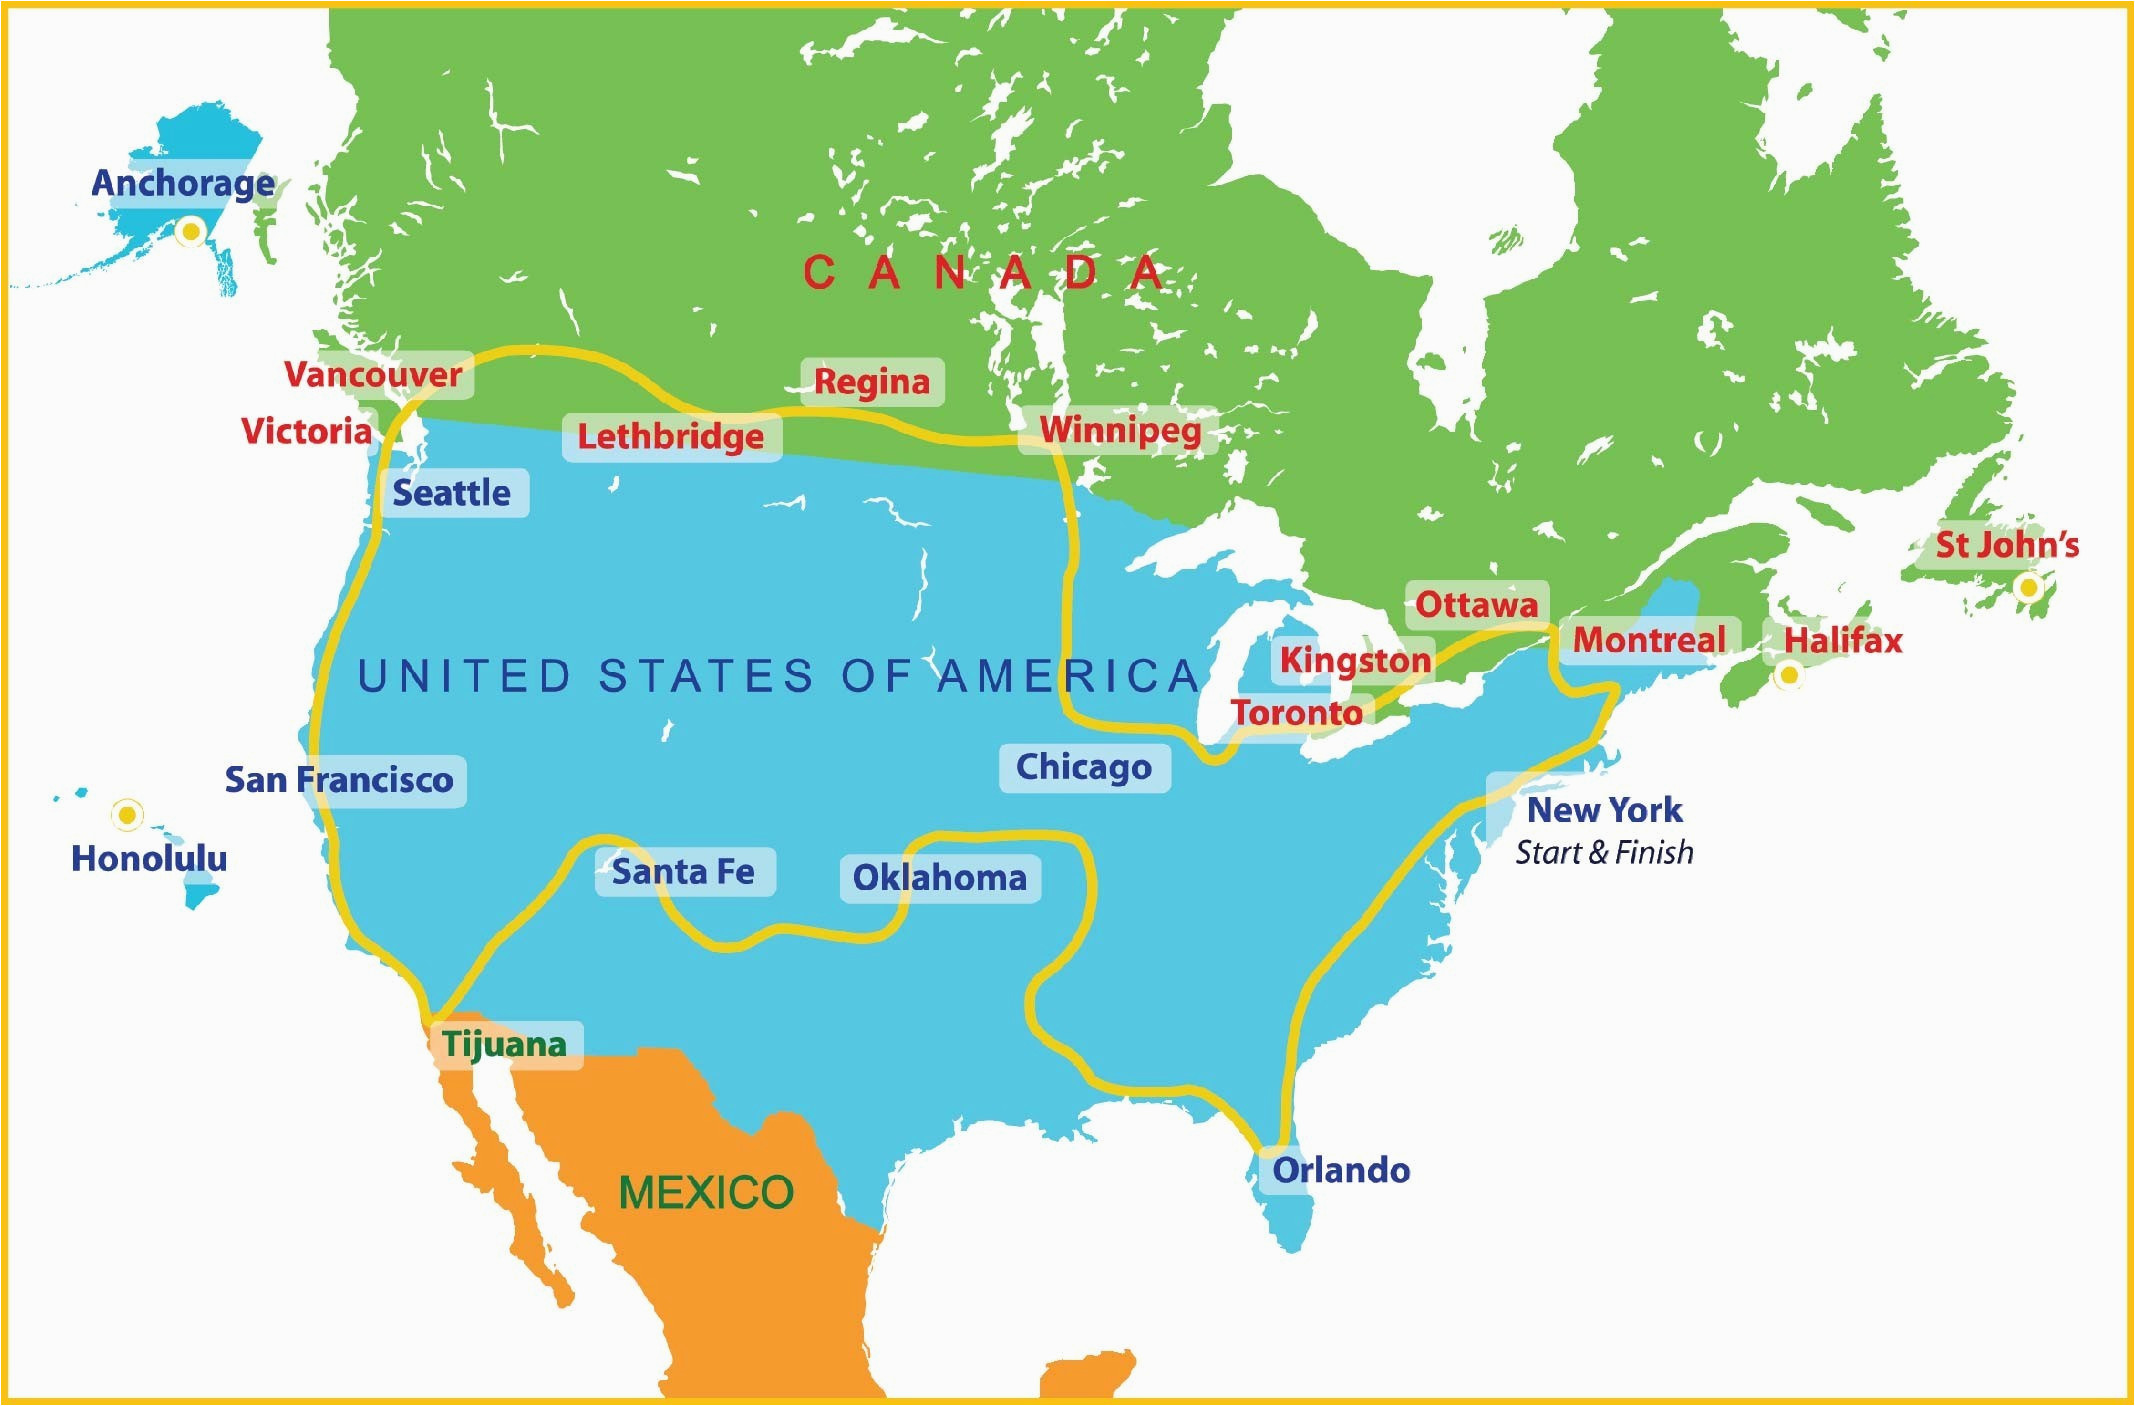 Map Of New York Ohio Area.Ohio New York Map Us And Canada City Map Refrence Canada Map With